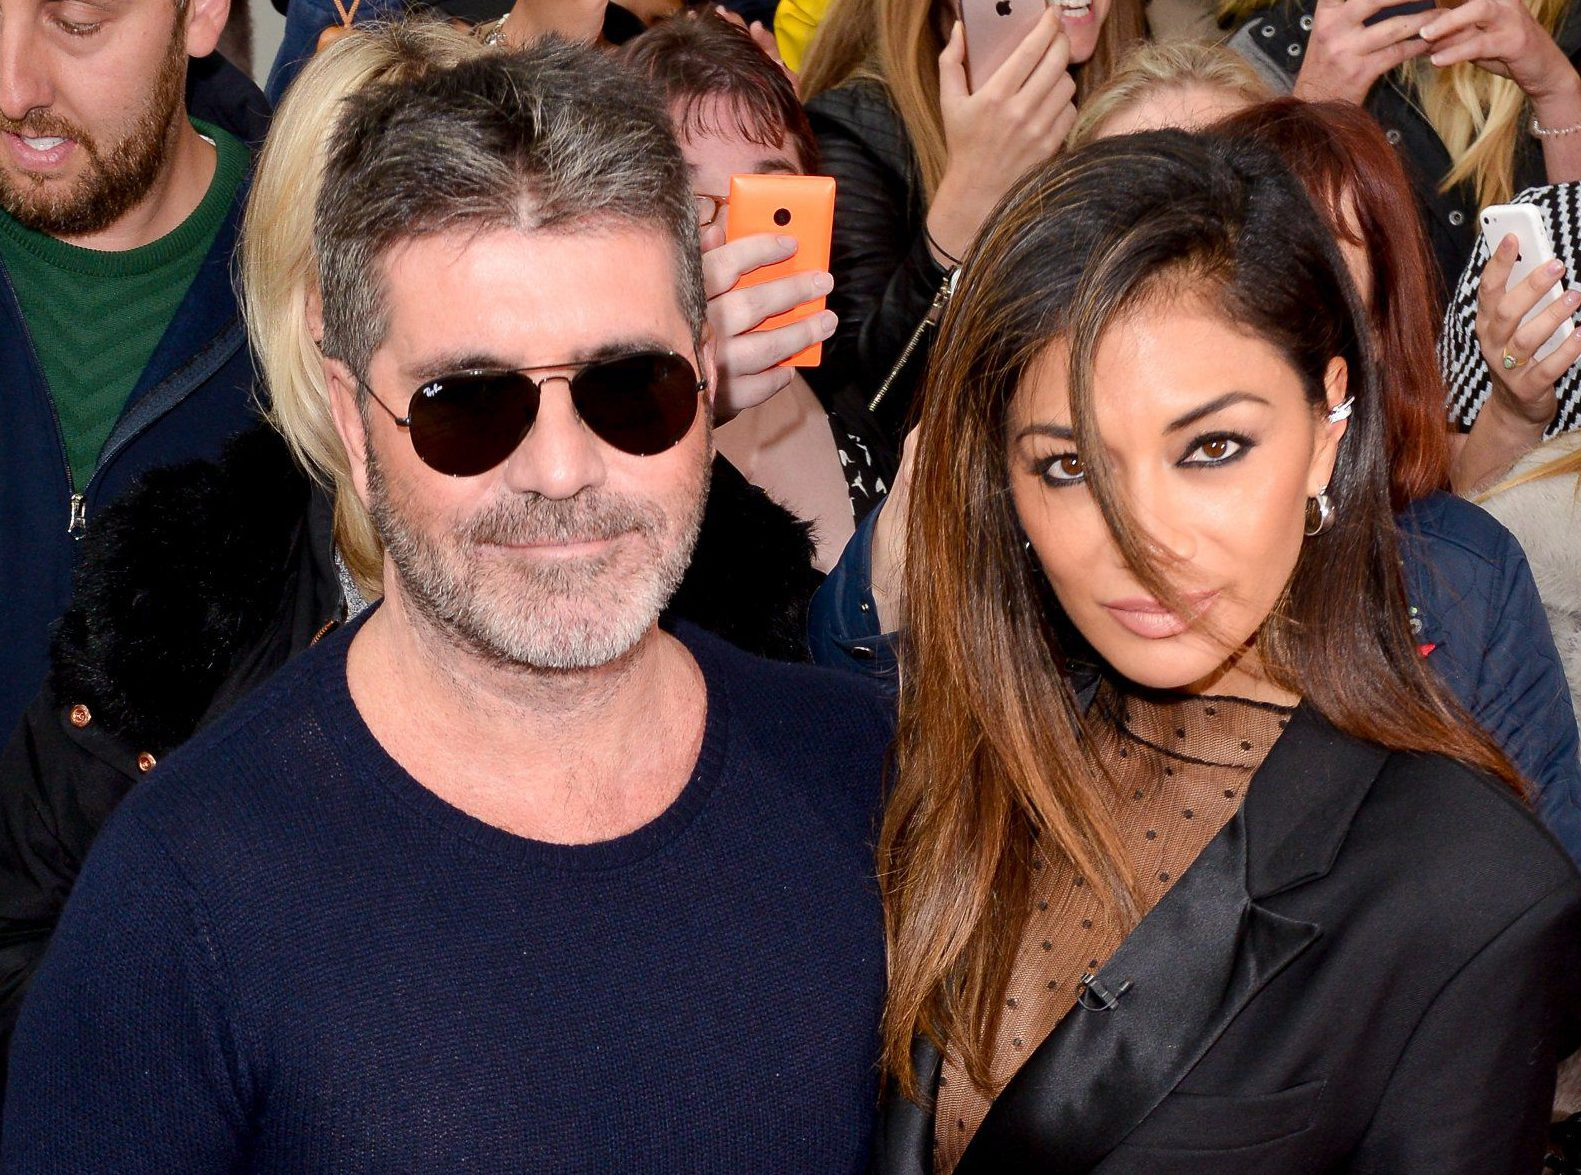 MANCHESTER, ENGLAND - JUNE 13: Simon Cowell with Nicole Scherzinger as they arrive for the X Factor Auditions Manchester at Old Trafford on June 13, 2016 in Manchester, England. (Photo by Richard Stonehouse/Getty Images)